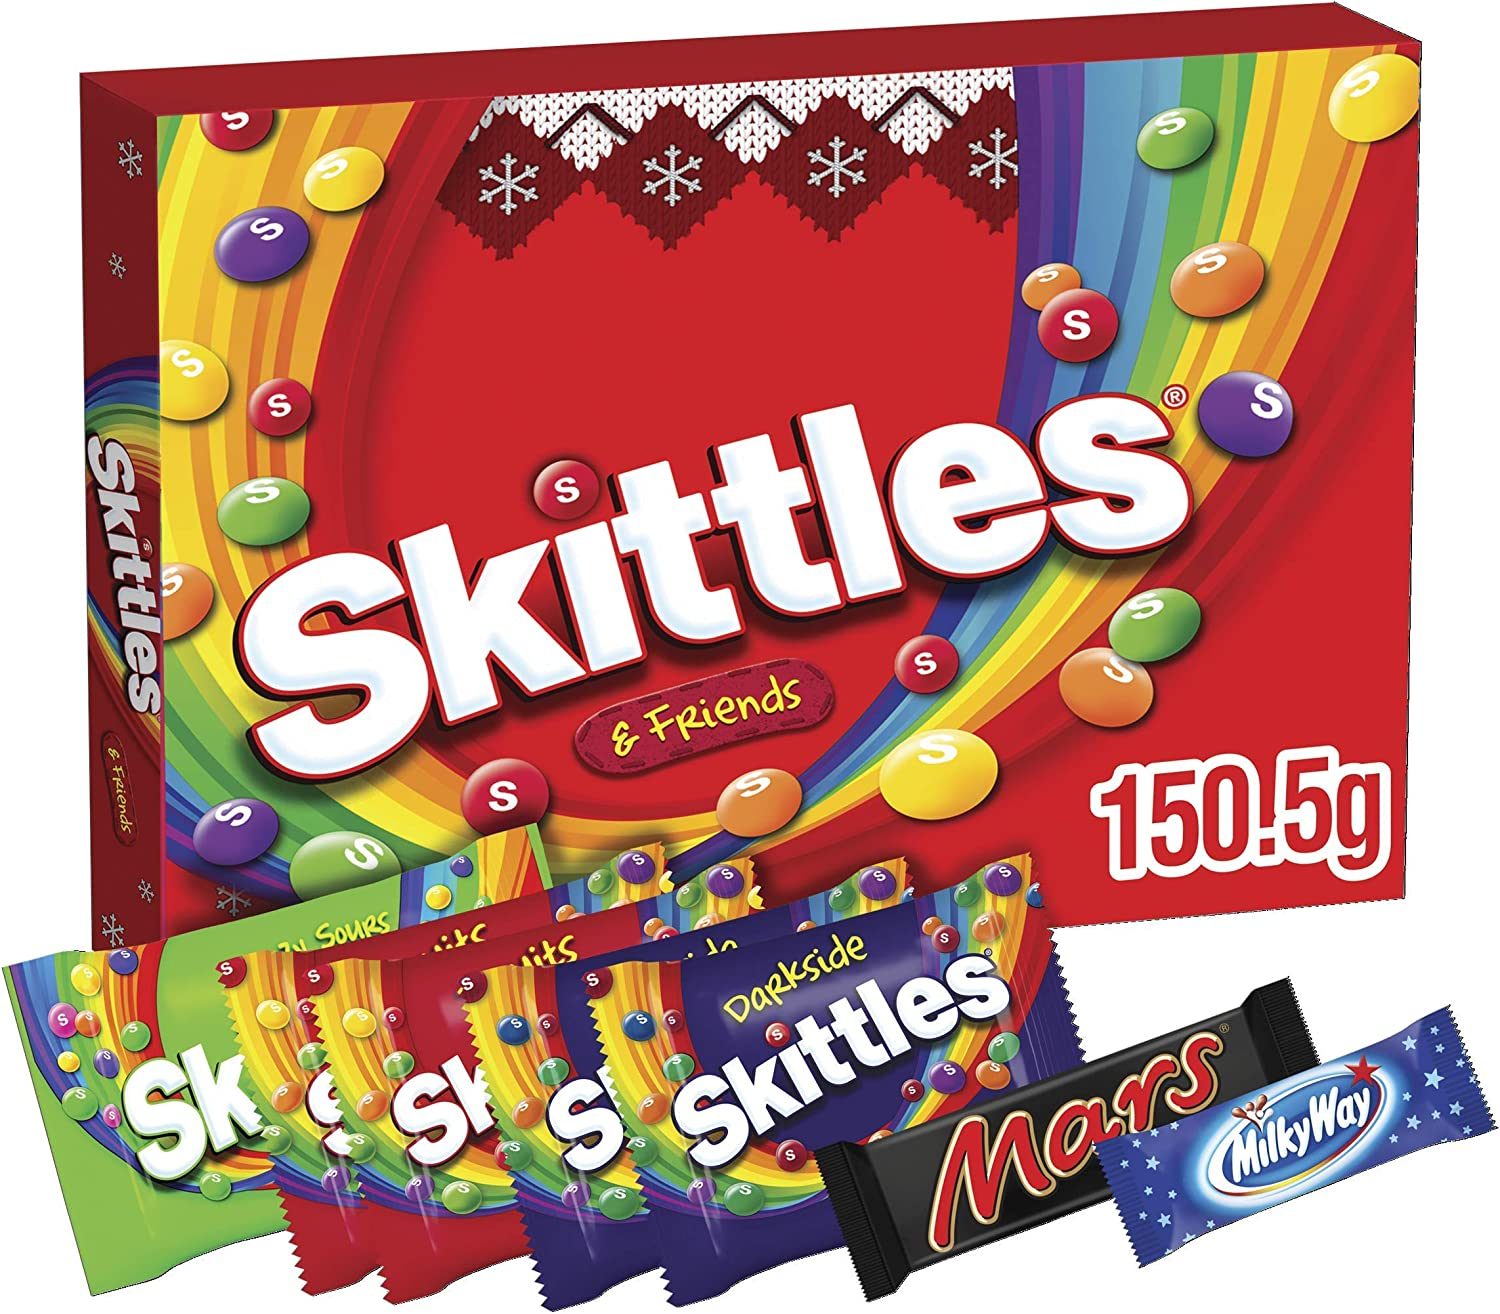 Skittles Sweets Box, Stocking Fillers, Selection Box 39% OFF £2 PRE-ORDER @ Amazon